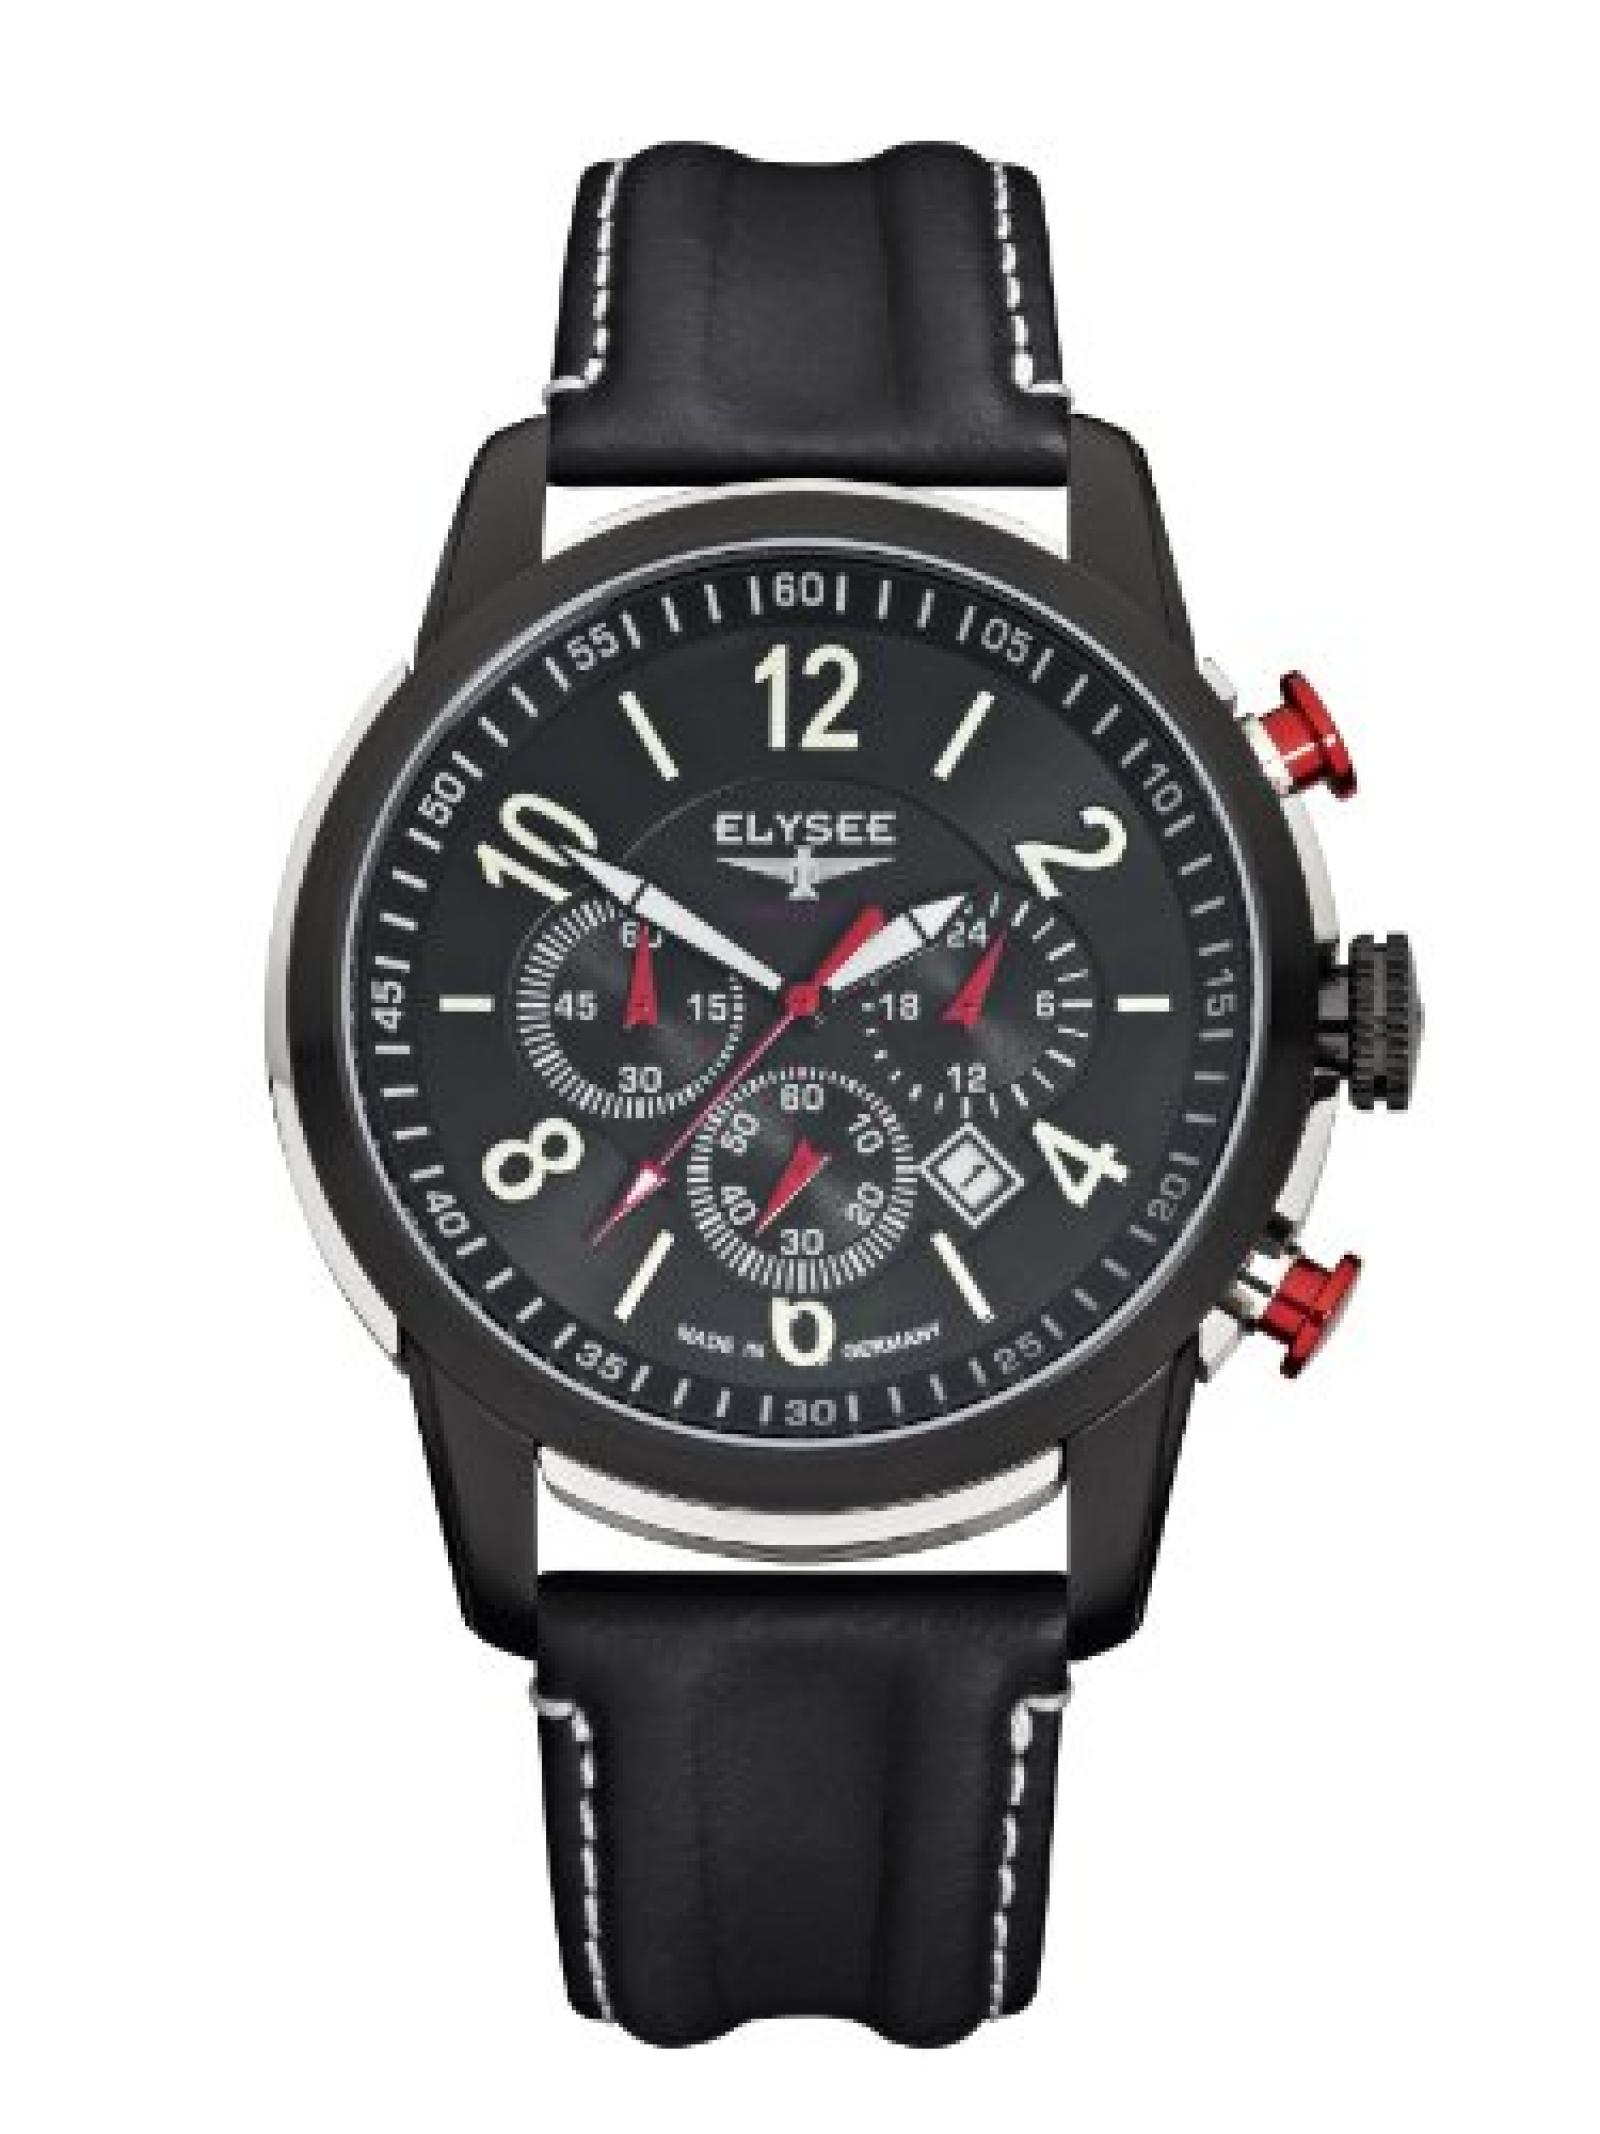 Elysee Herrenchronograph - Competition Edition - The Race 1 - 80524L